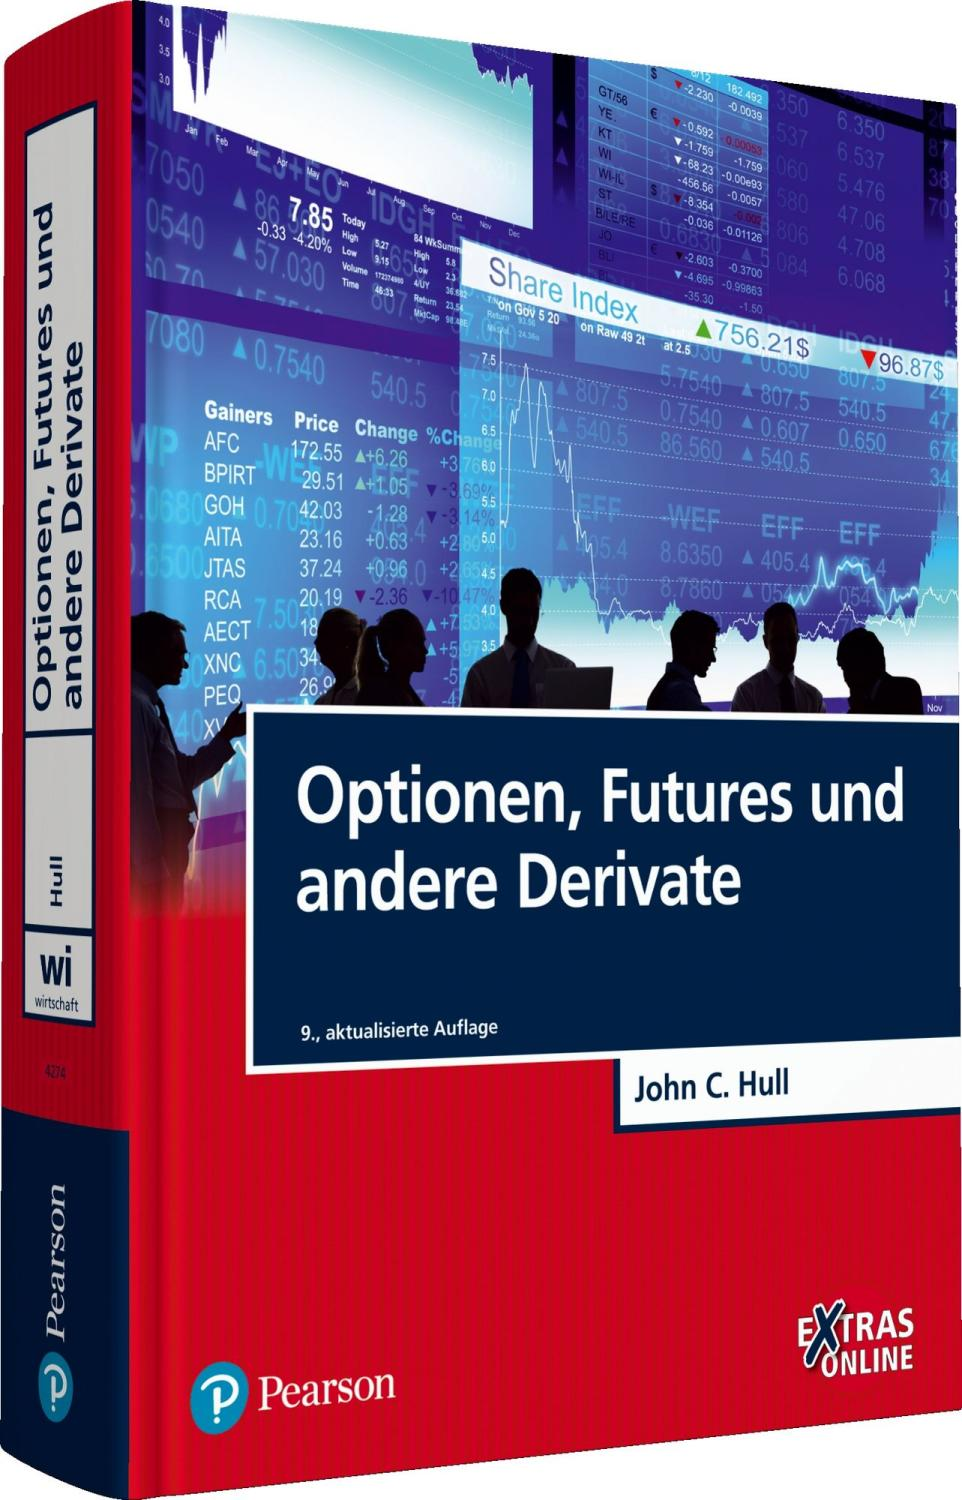 Options, Futures, and Other Derivatives, Seventh Edition. The following typos and other errors are in the first printings of the seventh edition of Options, Futures and Other Derivatives and its Solutions Manual. We have tried to correct them in subsequent printings and so they may not be present in the copy you have.